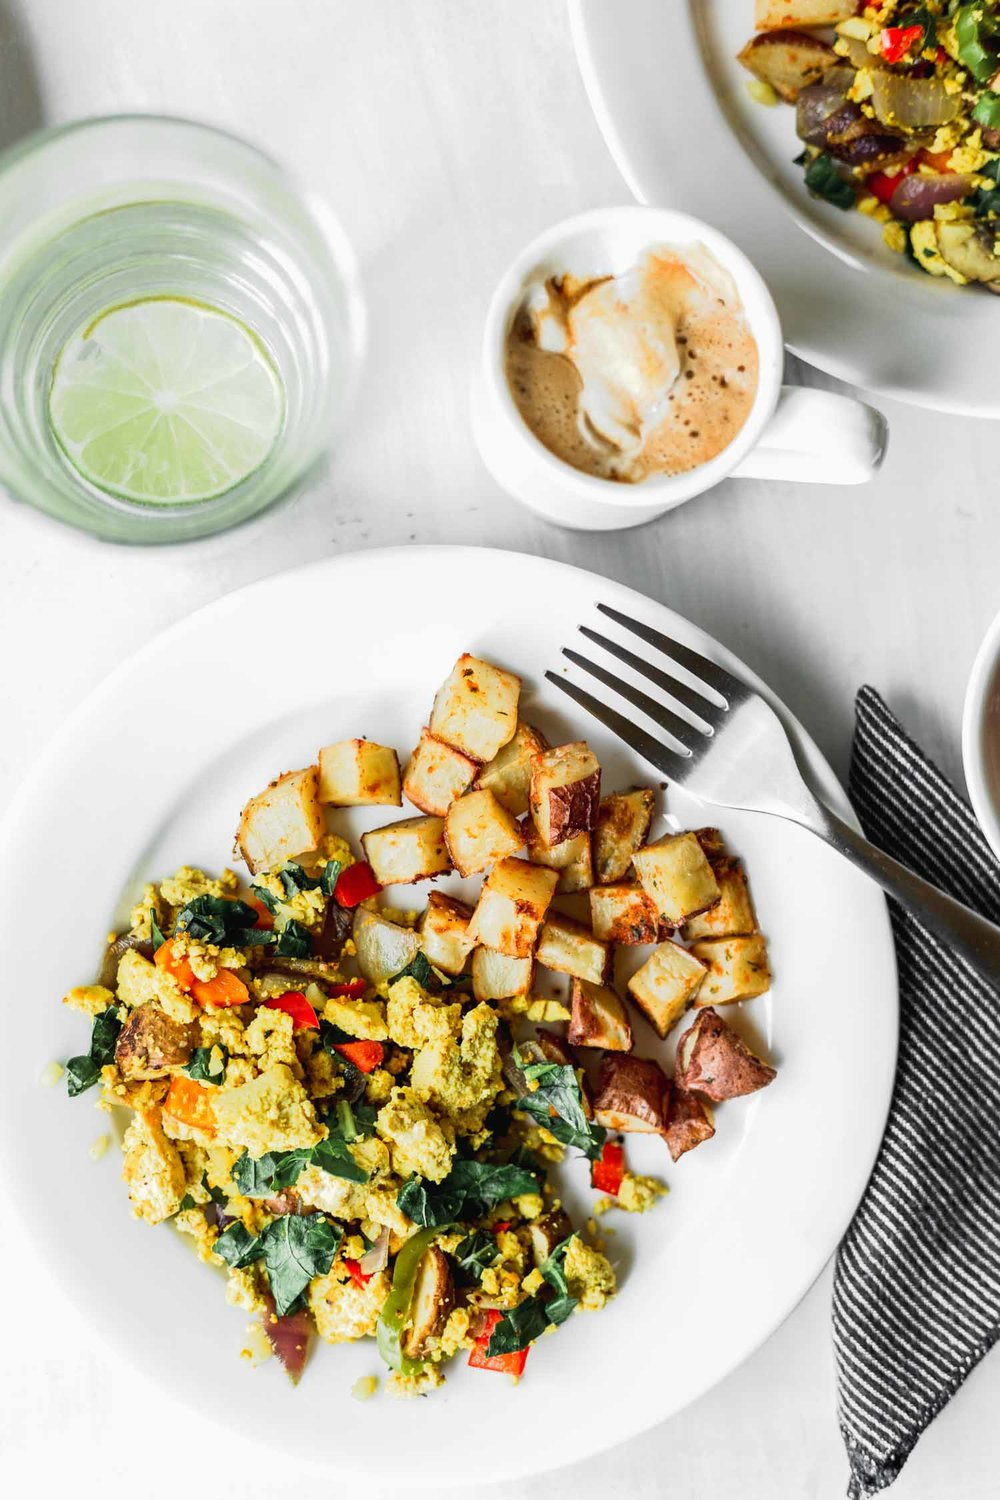 Veggie-Packed Scrambled Tofu recipe & photo by Beautiful Ingredient. vegan | gluten-free | oil-free | easy | veggie-packed | 30 minutes or less | breakfast